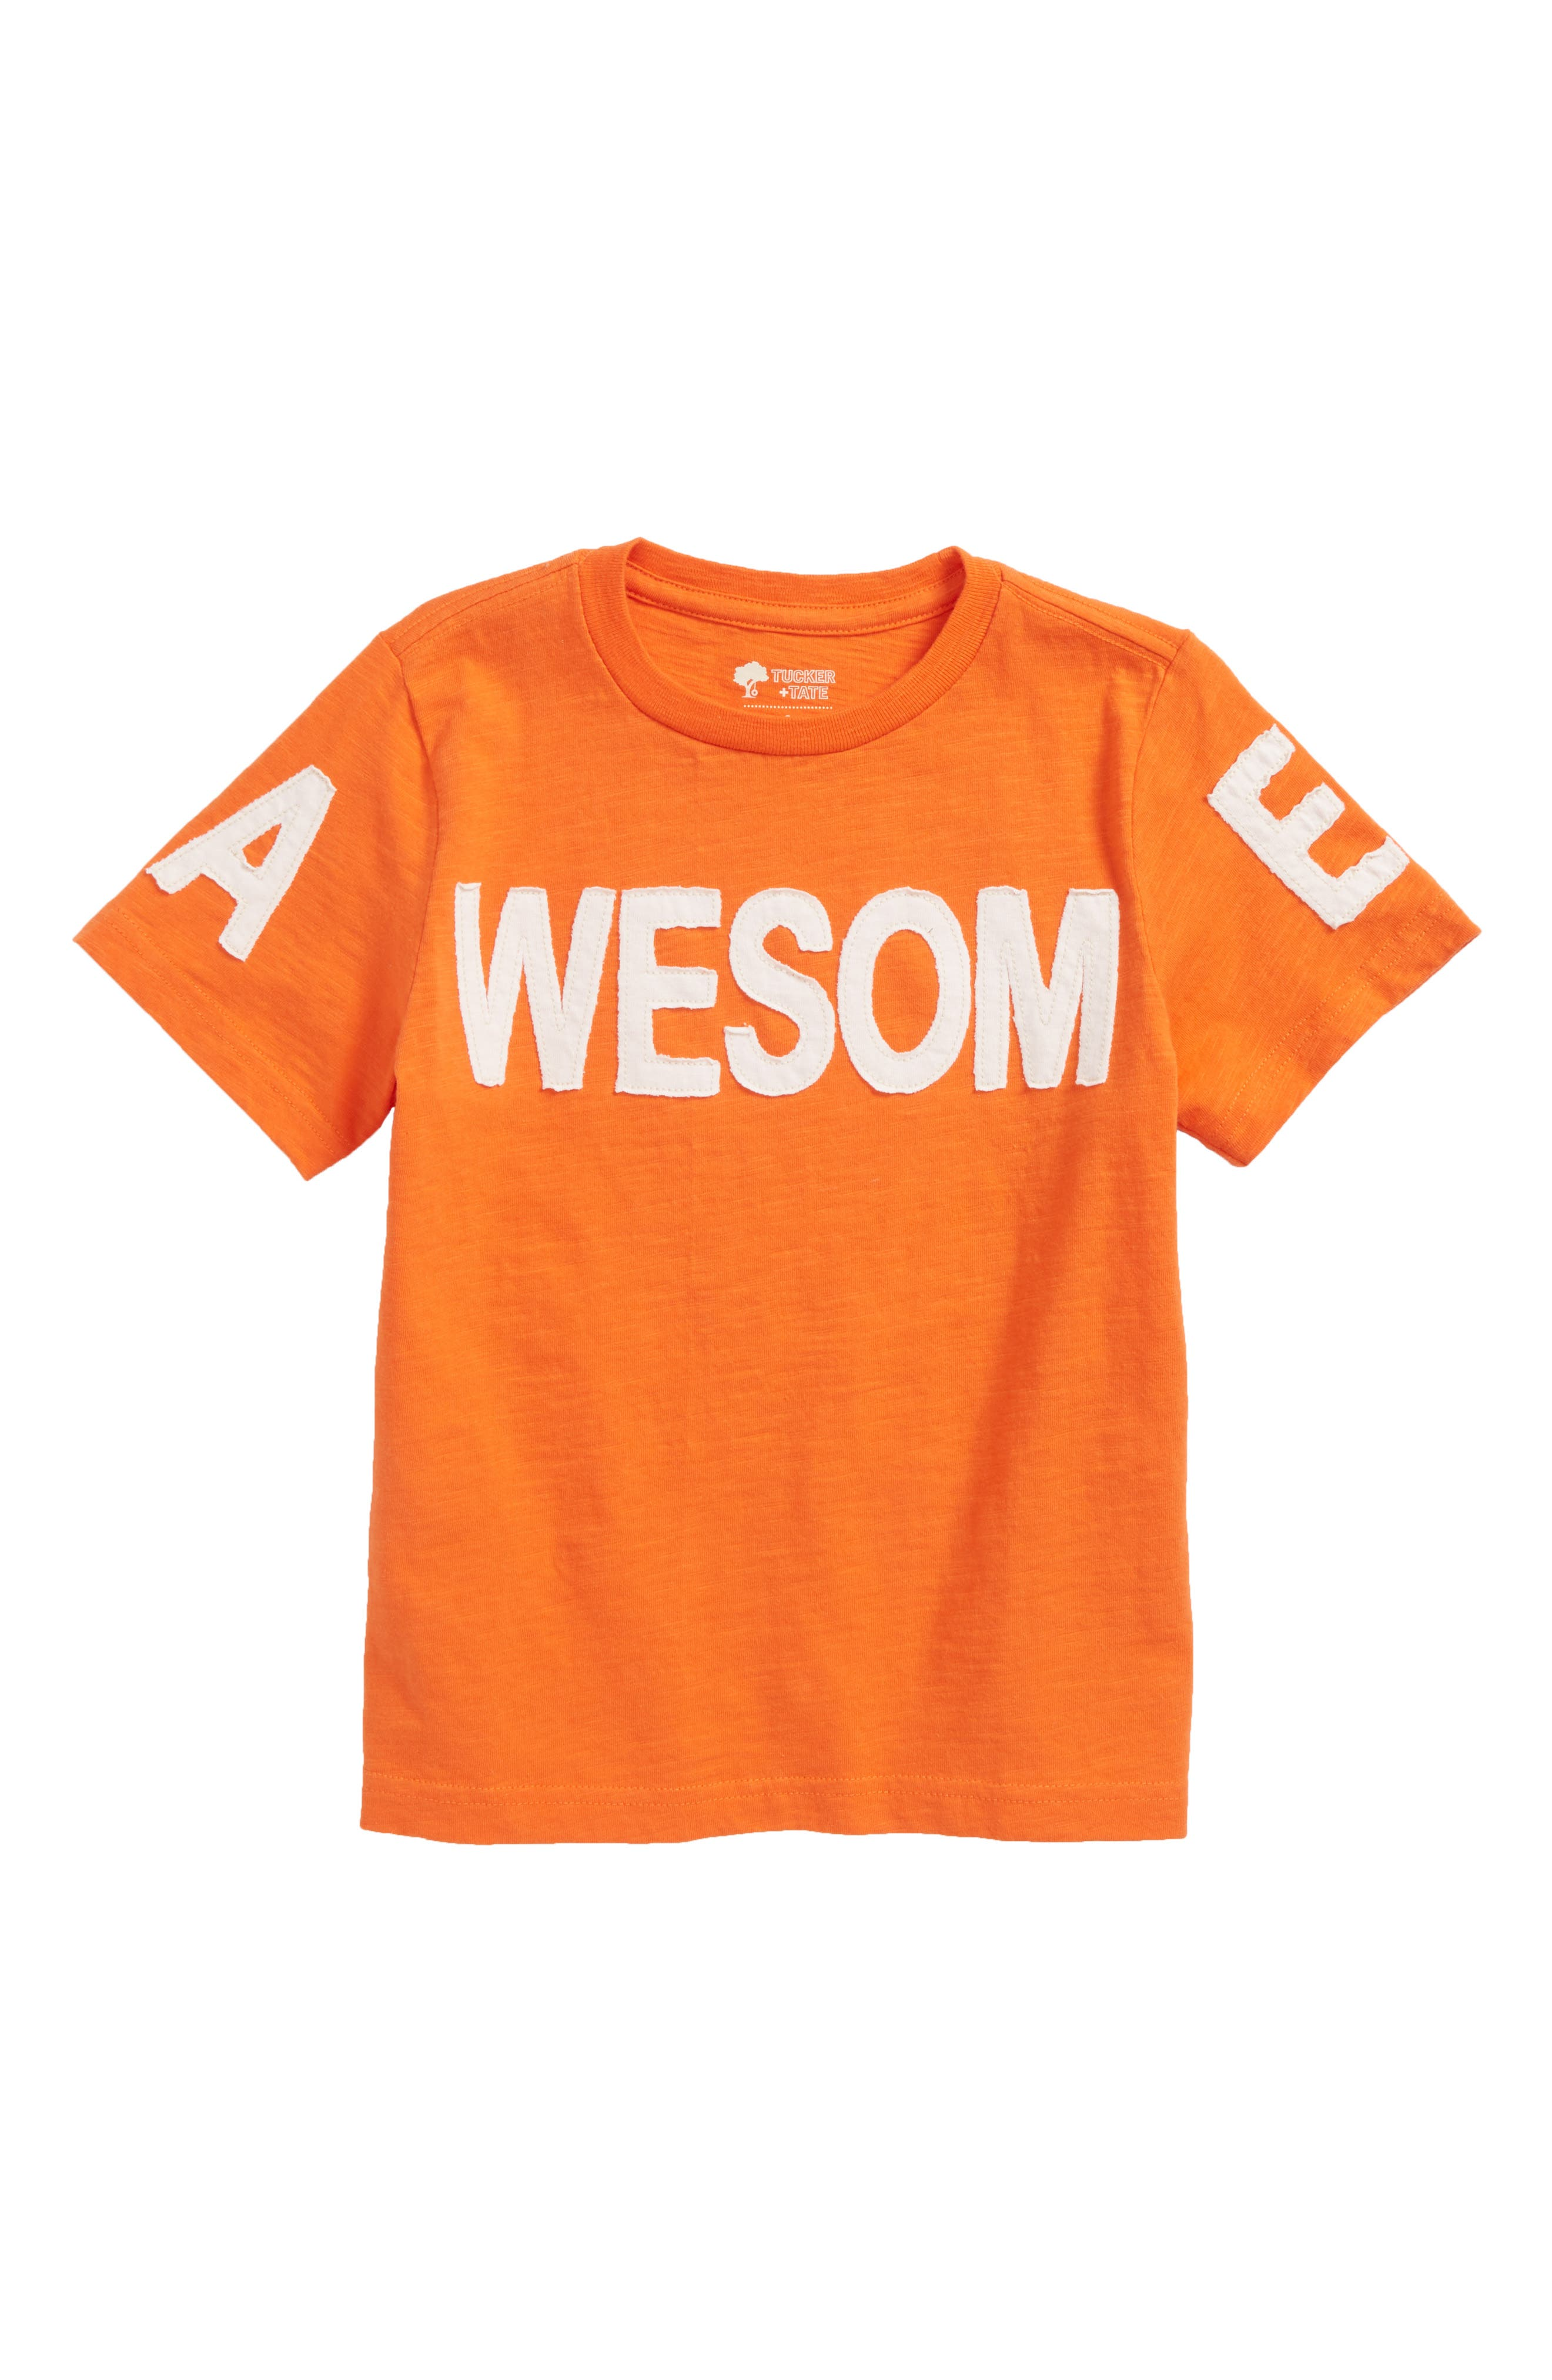 Awesome Appliqué T-Shirt,                             Main thumbnail 1, color,                             Orange Lily Awesome